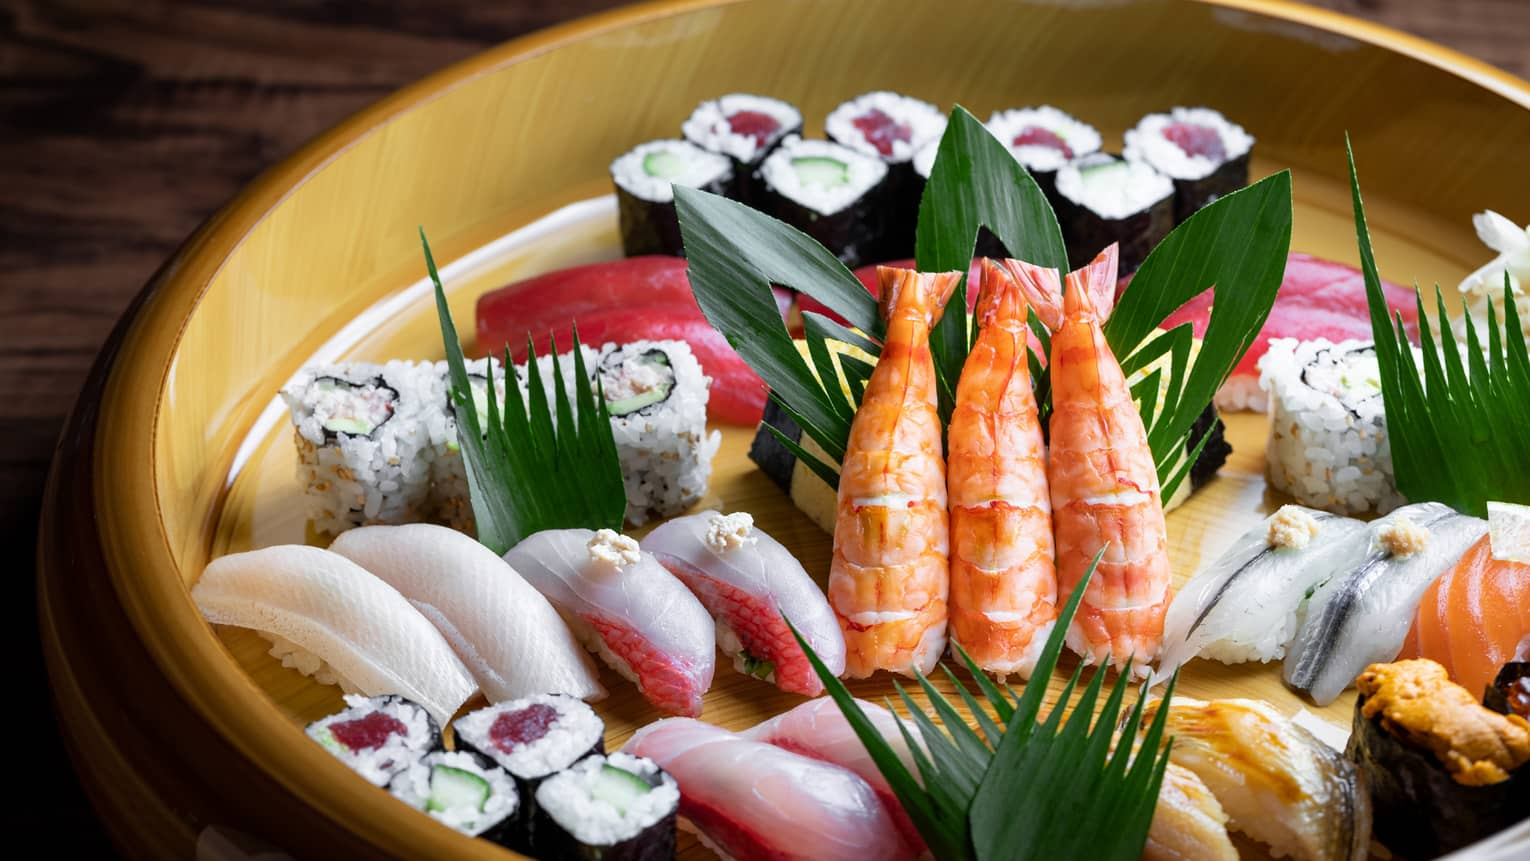 Sushi assortment from Onyx restaurant